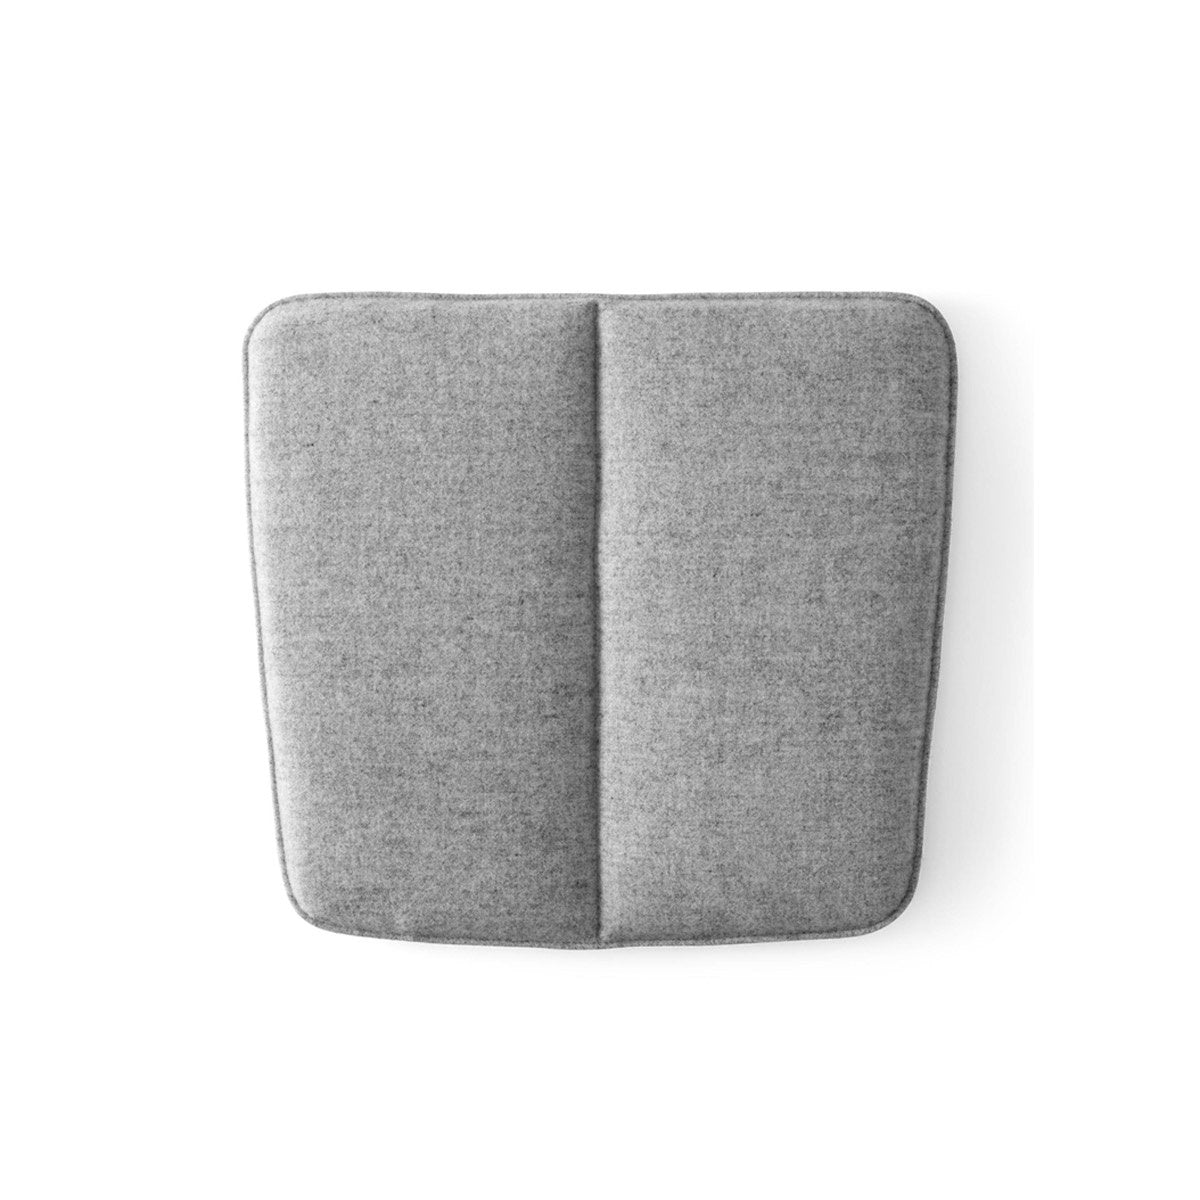 Menu WM String Cushion, Outdoor/Dining 41x37.5cm Dark Grey